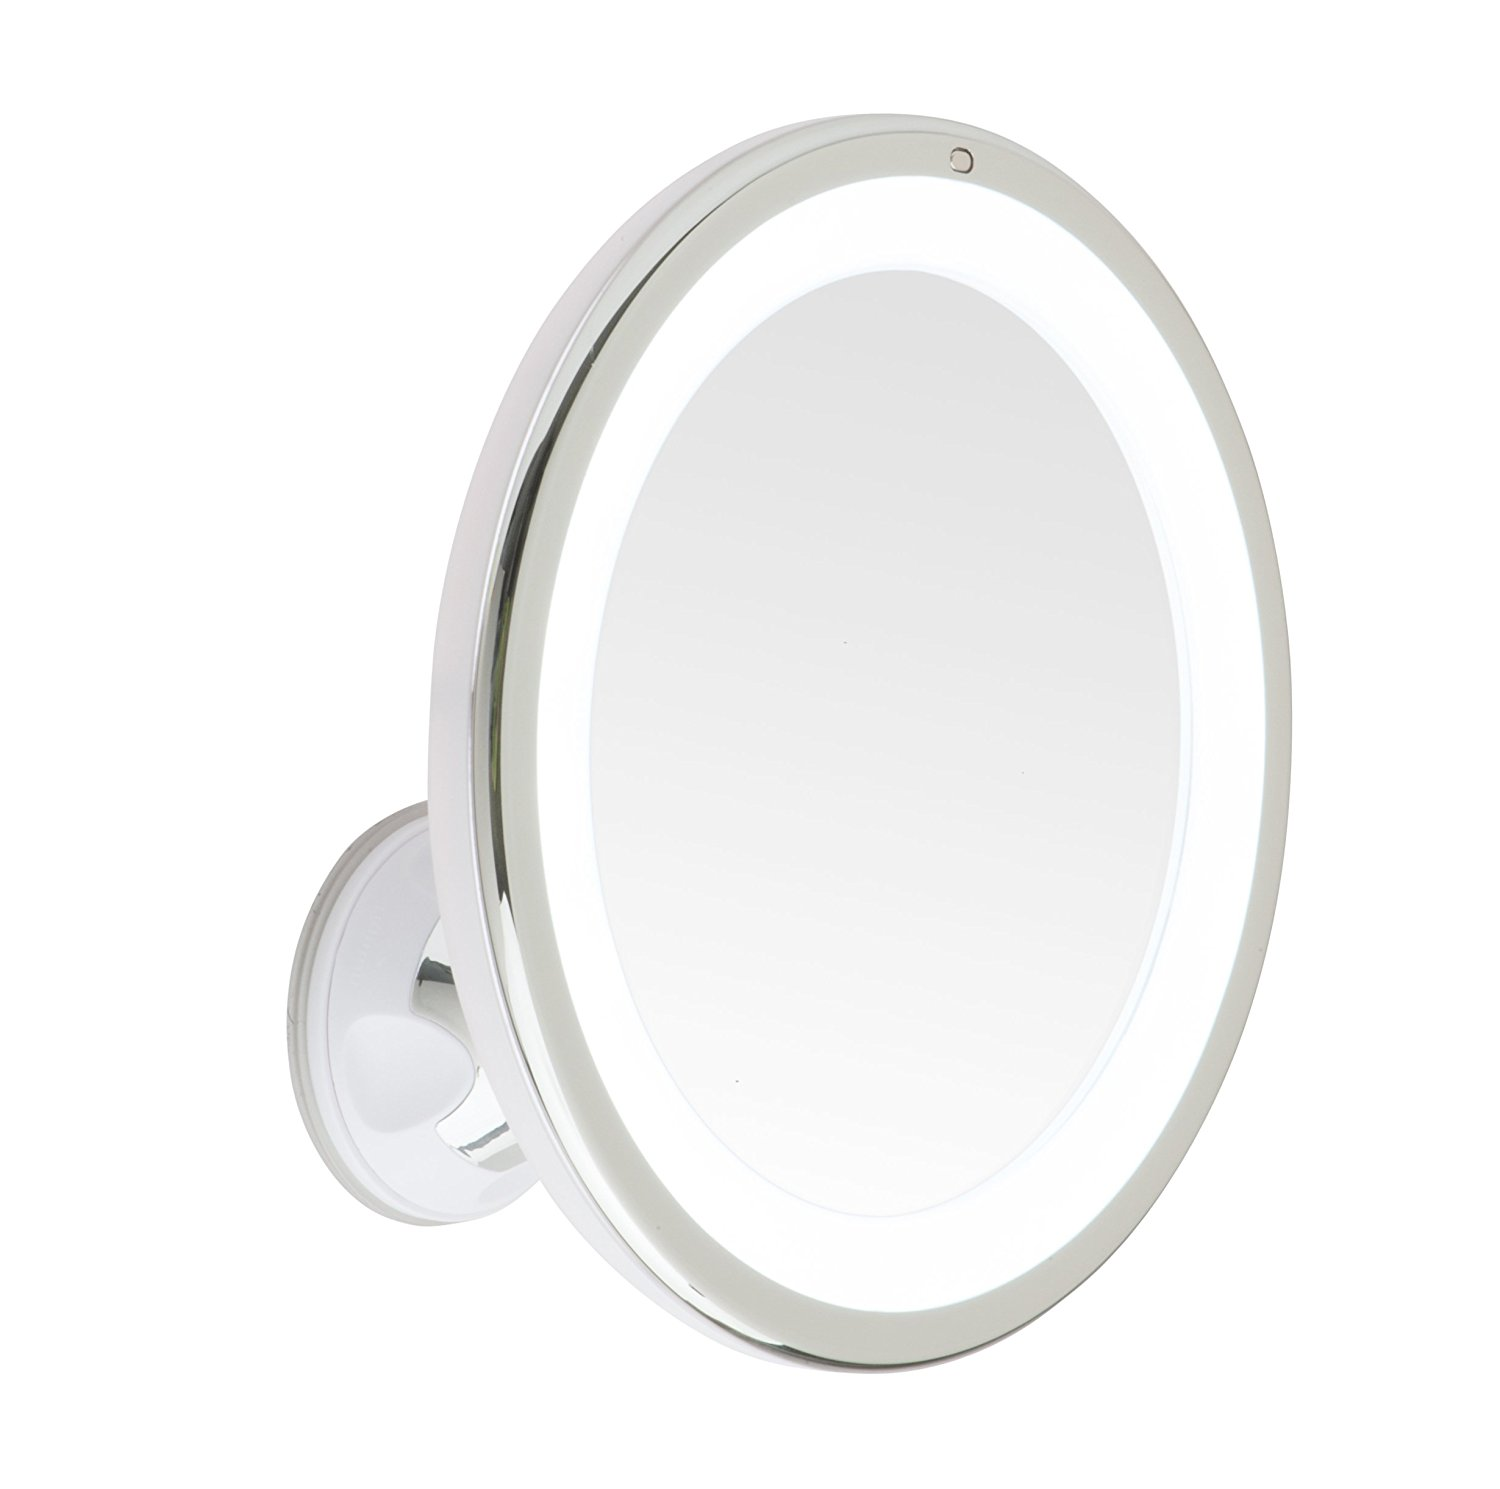 Best Lighted Vanity Mirror-Mirrorvana 8-Inch Diameter 5X Magnifying LED Lighted Vanity Makeup Mirror